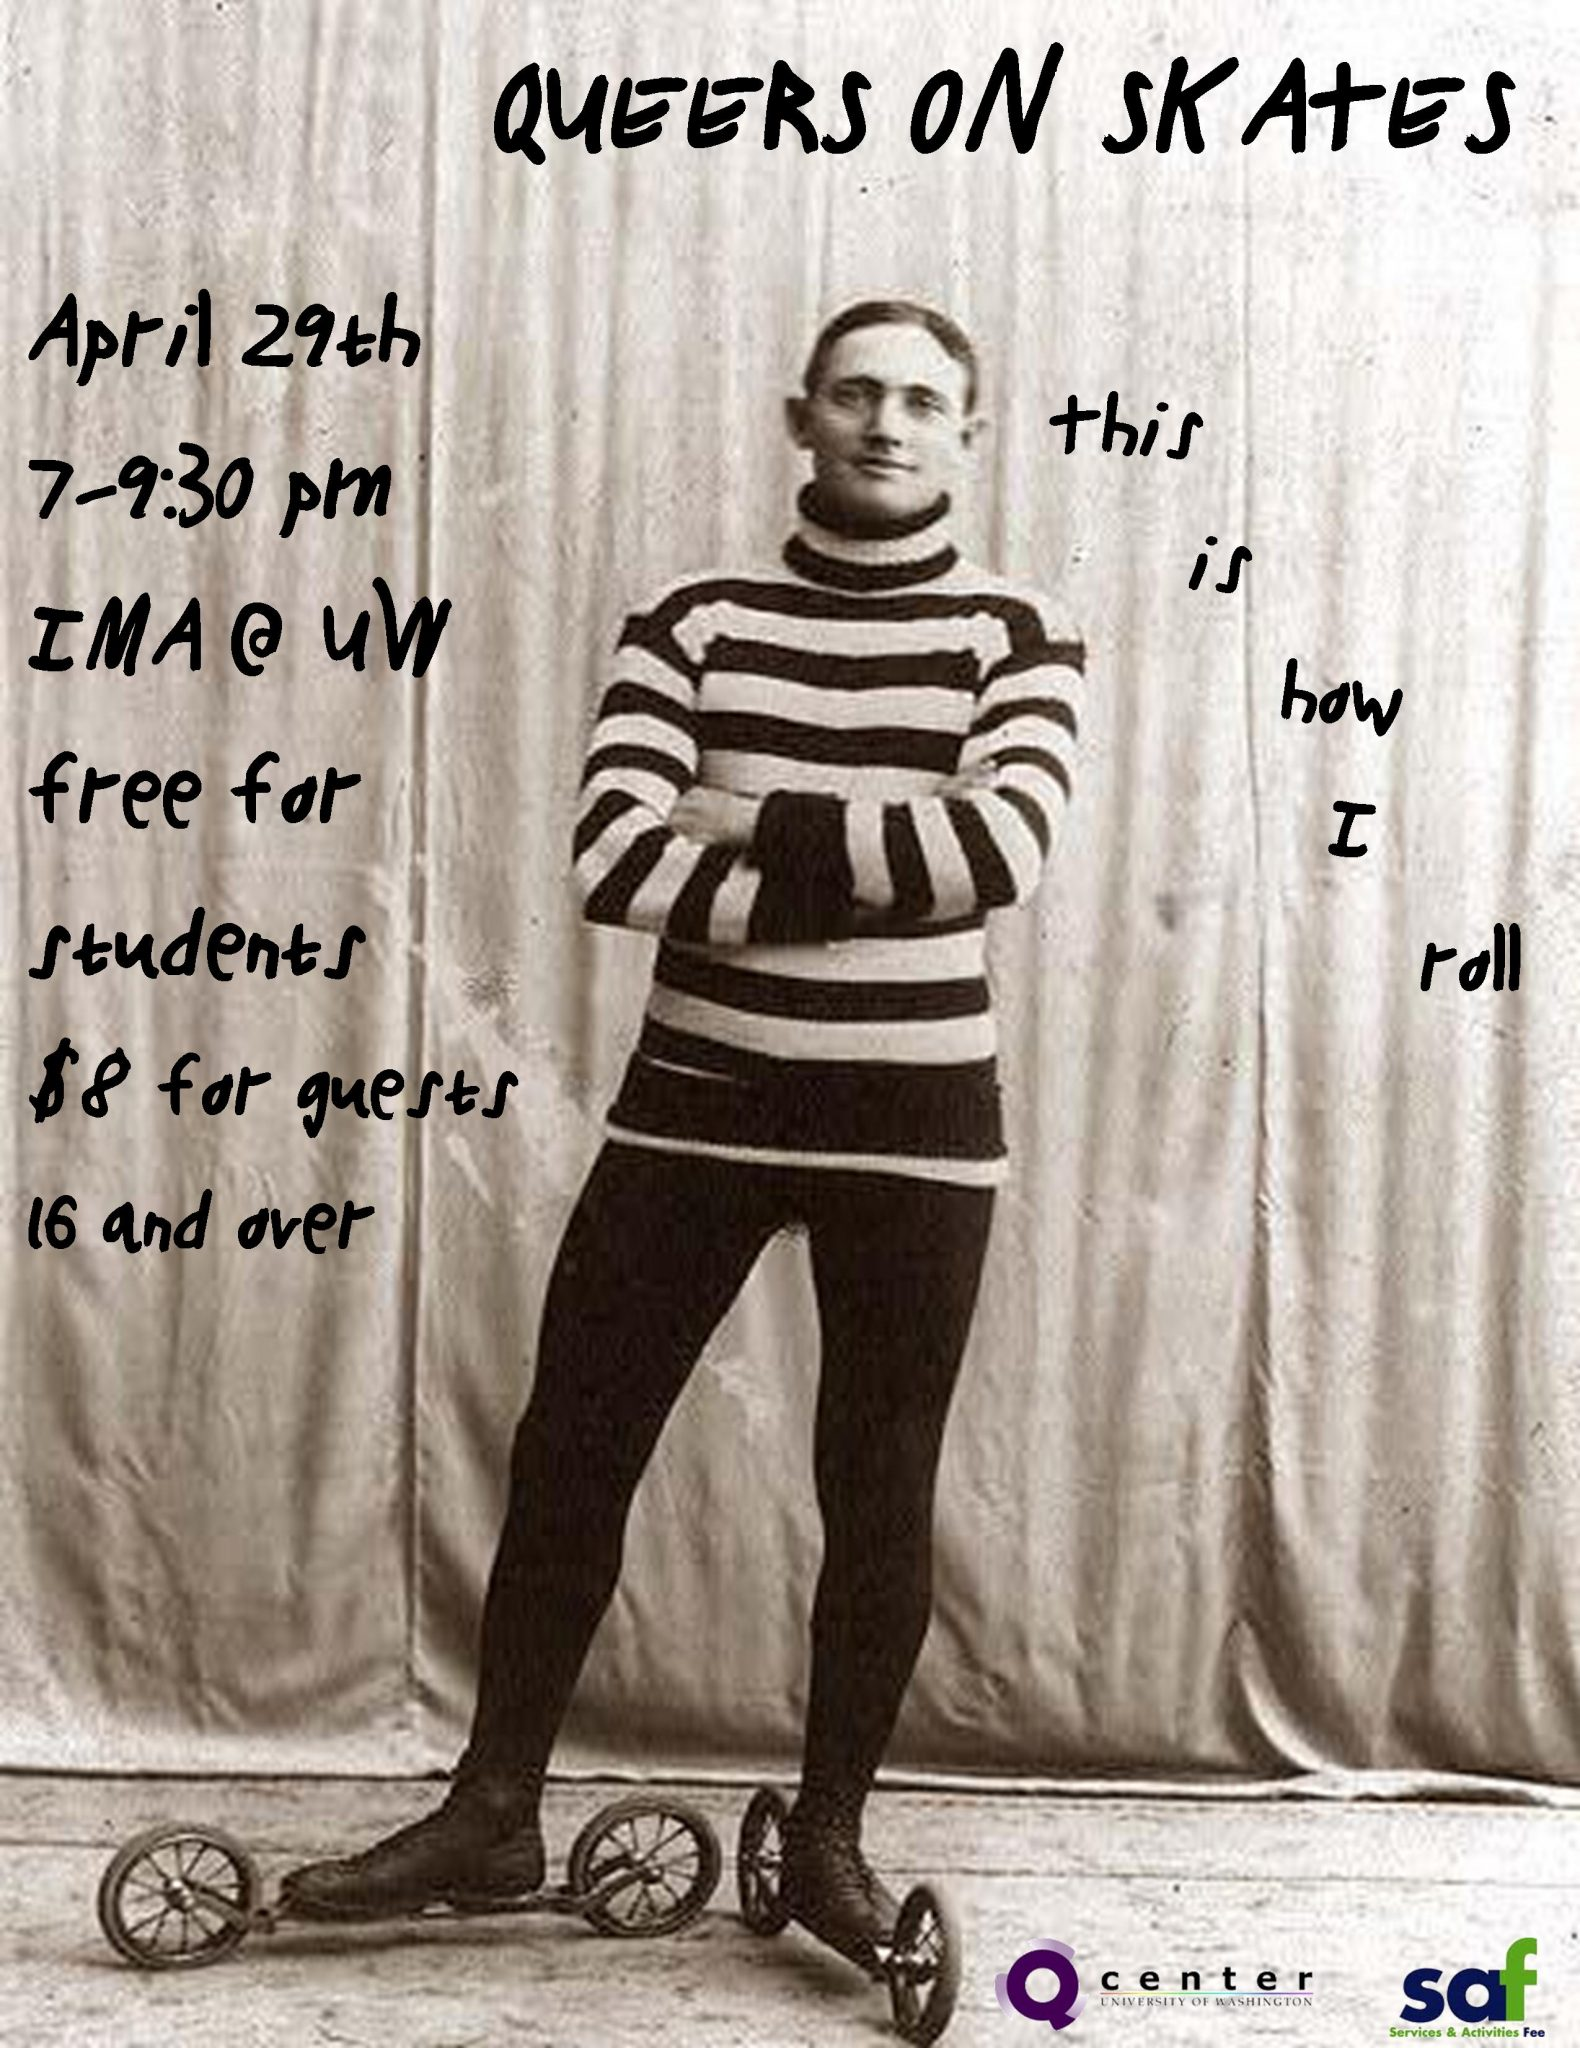 queers on skates, april 29th, uw ima